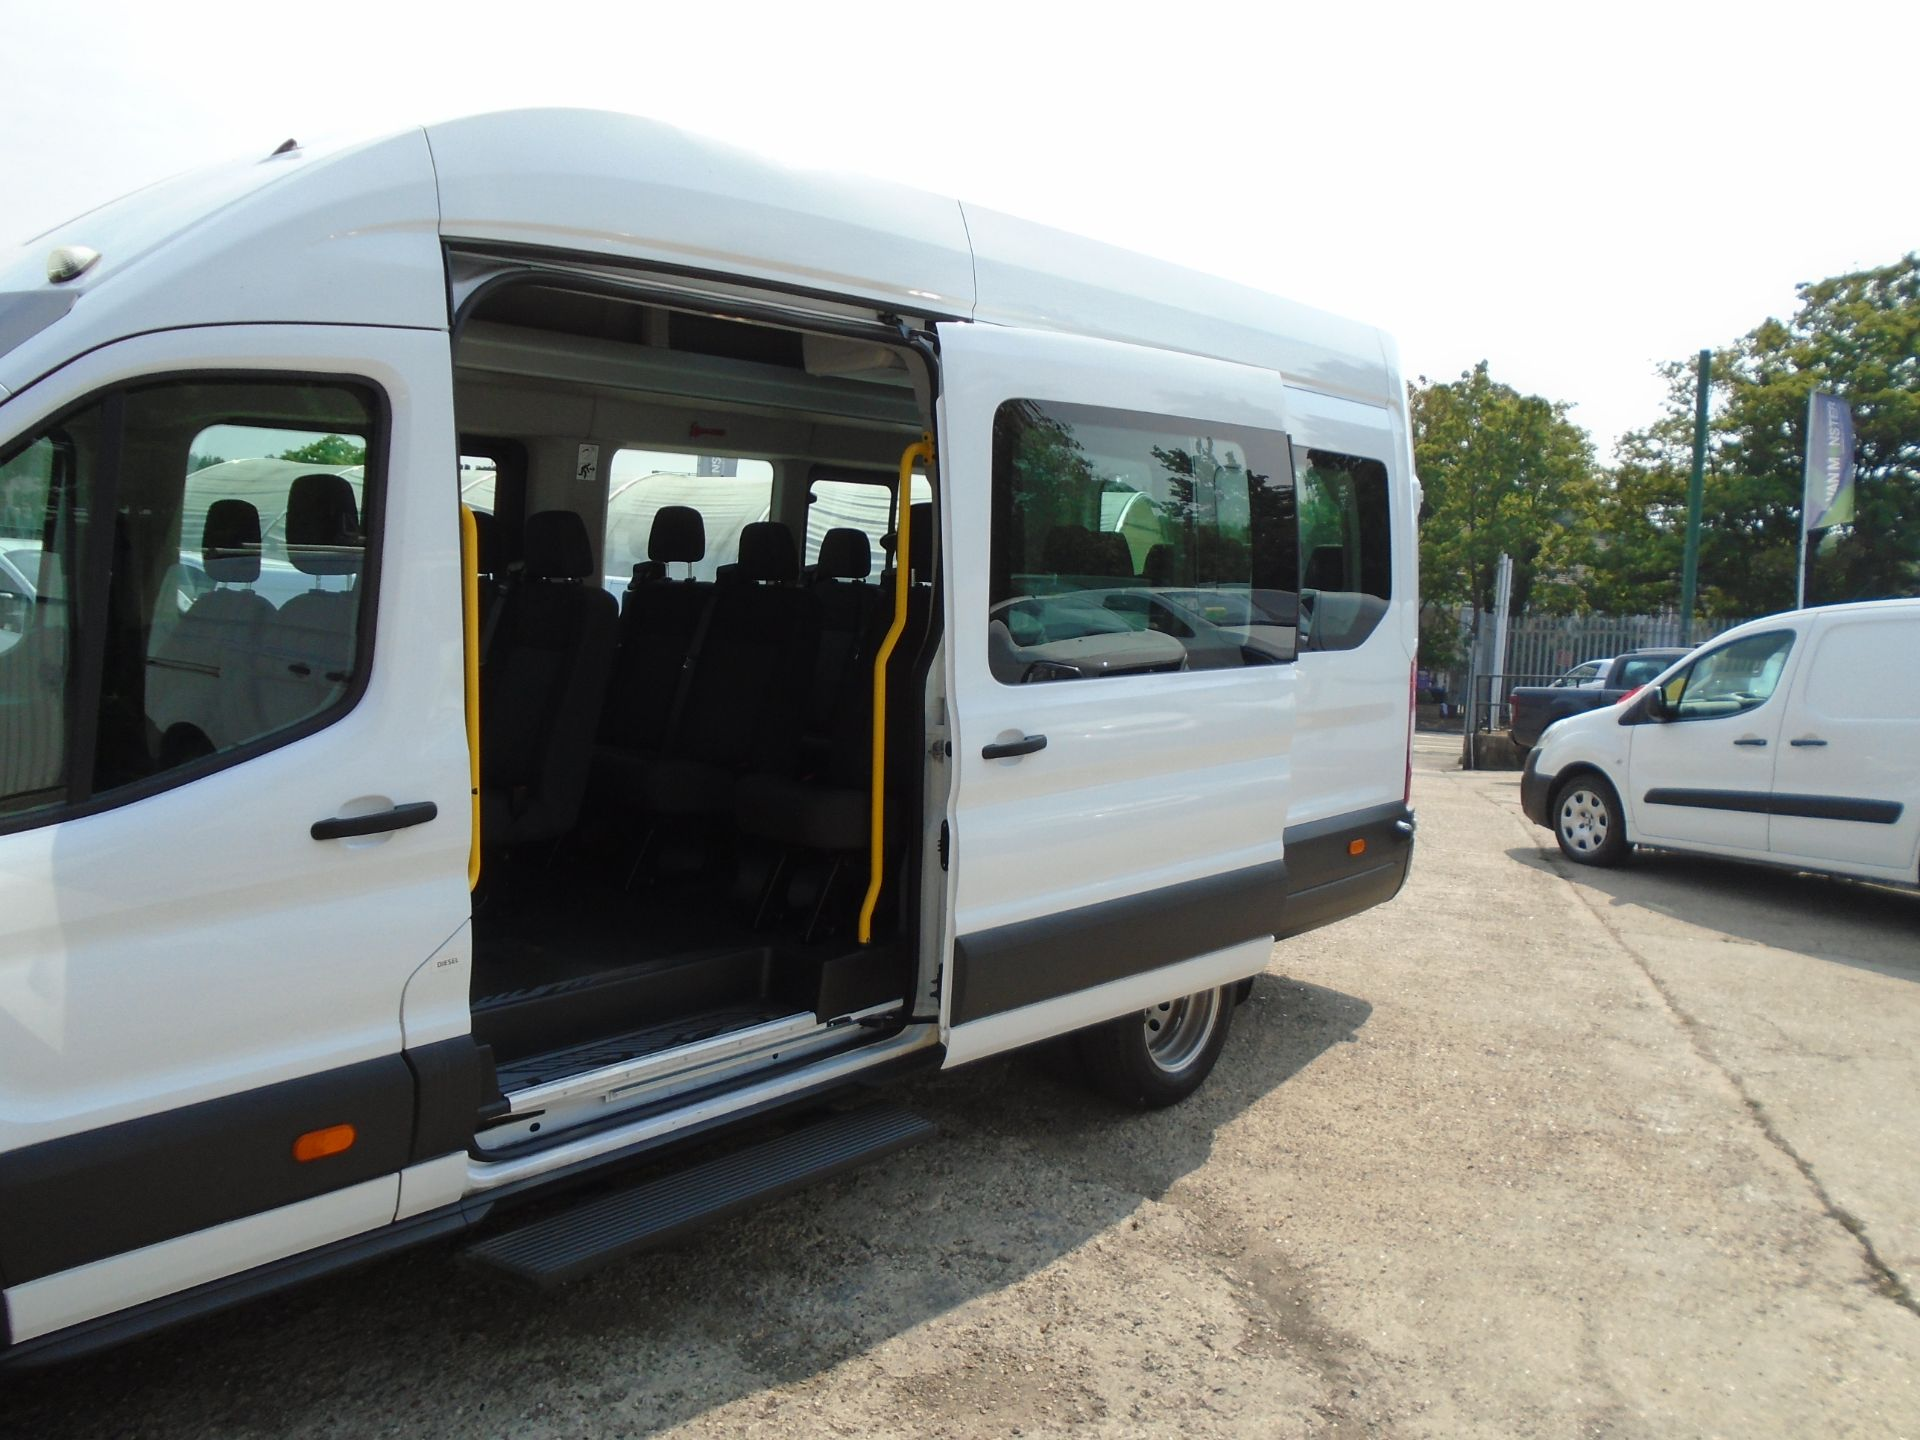 2016 Ford Transit 2.2 Tdci 125Ps H3 17 Seater (FP16UMV) Image 8